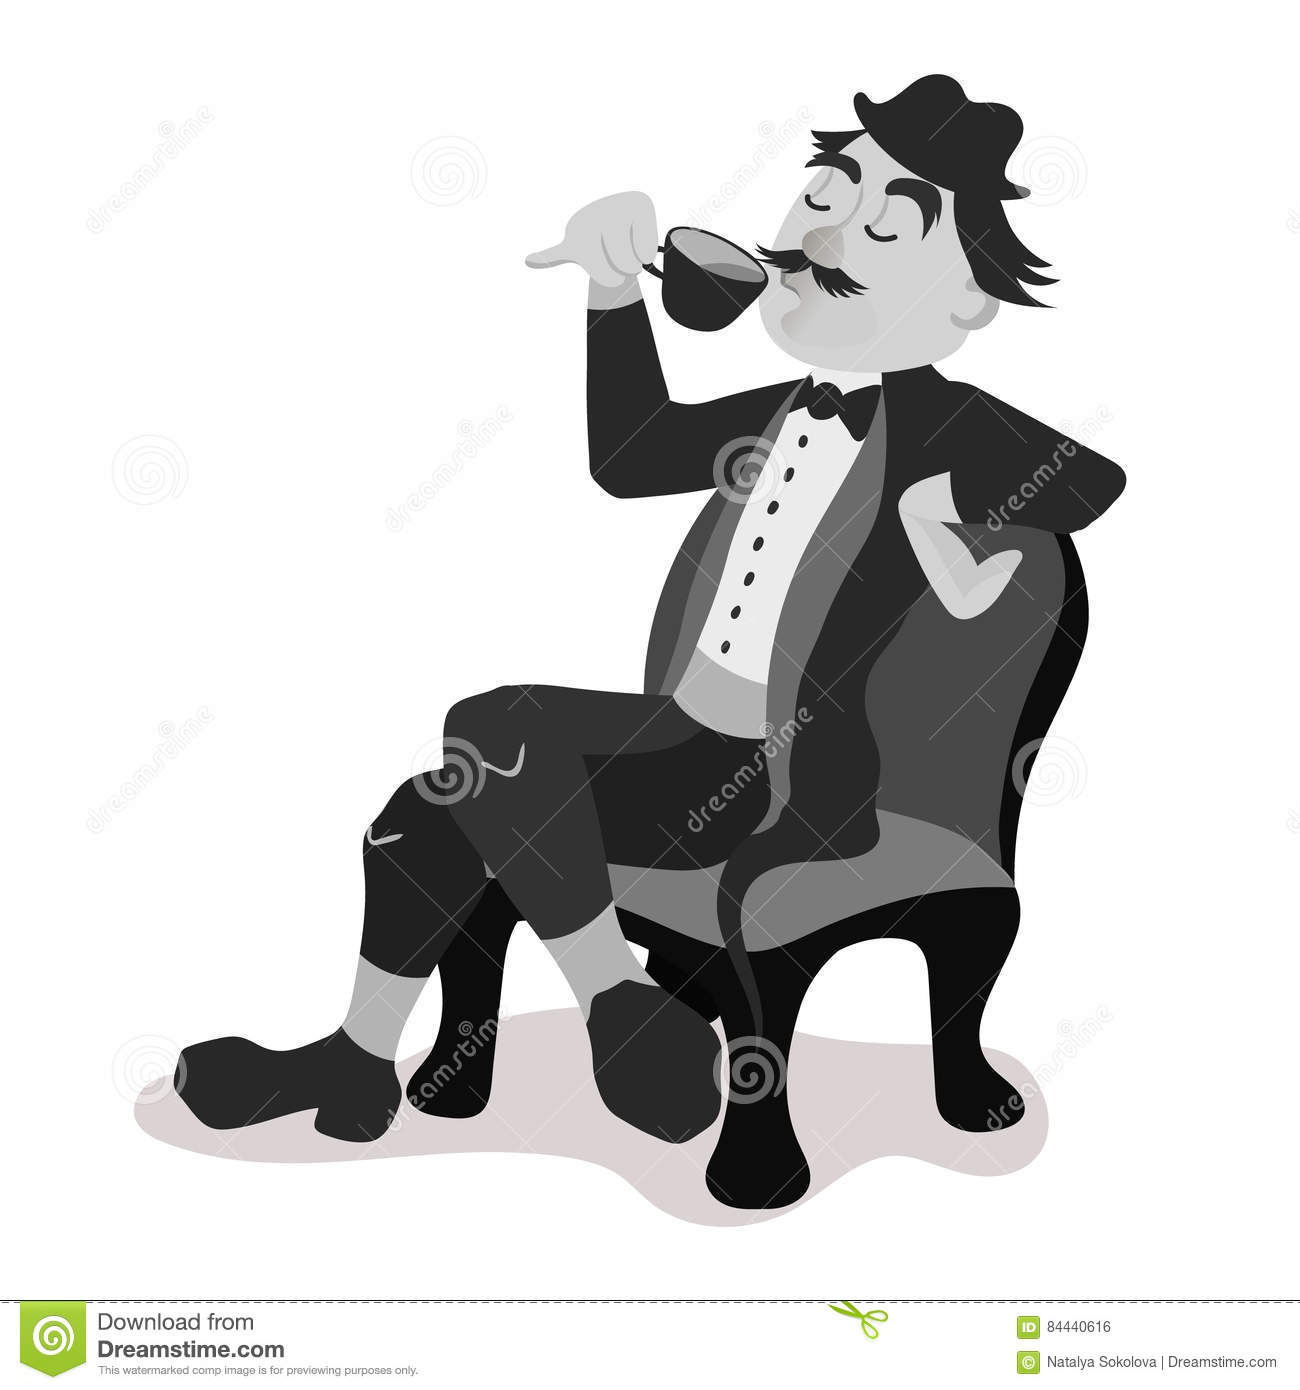 englishman drinking tea from a little teacup stock vector